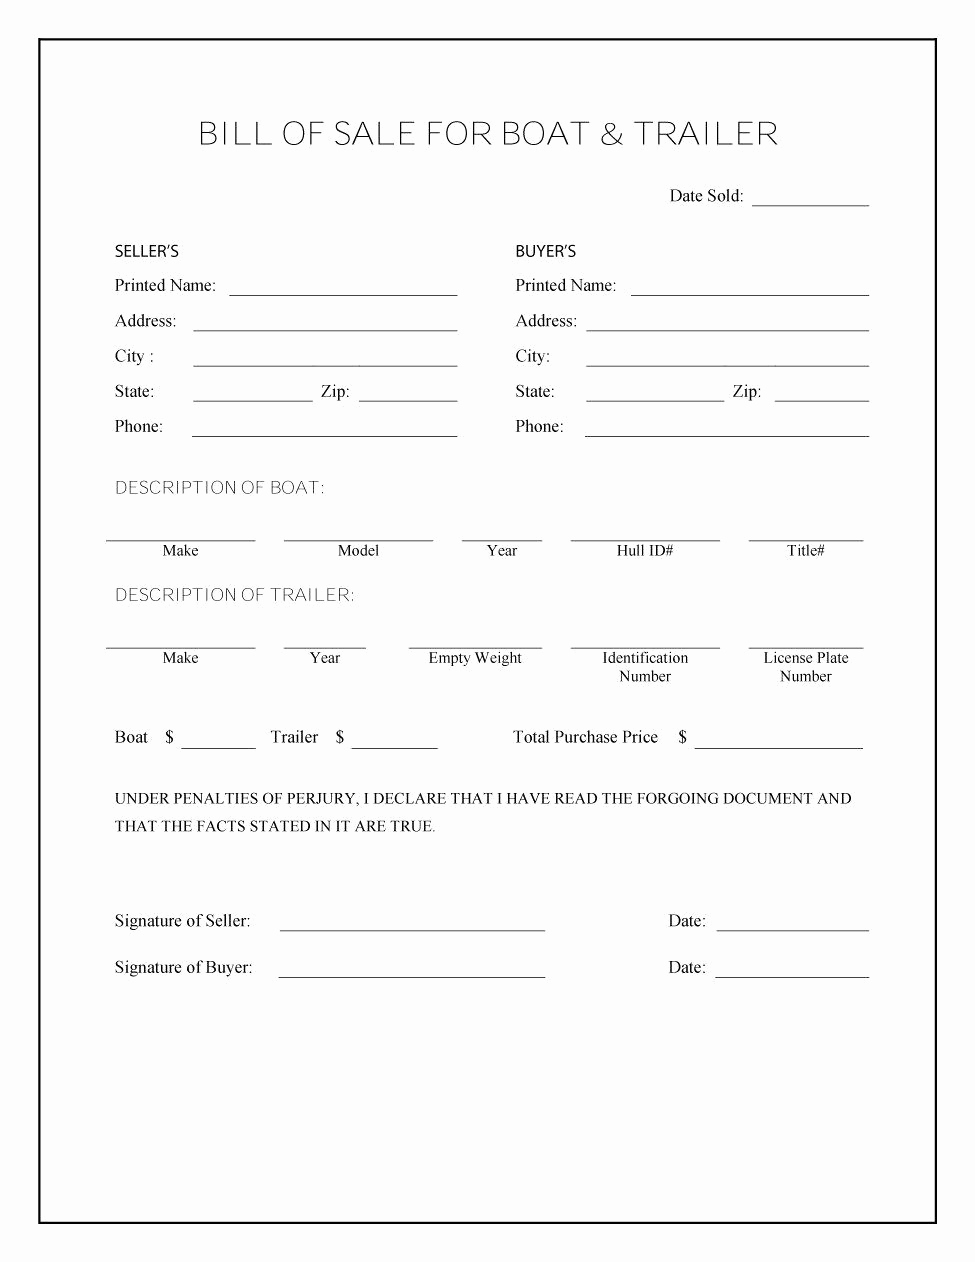 Example Of Bill Of Sale Best Of 45 Fee Printable Bill Of Sale Templates Car Boat Gun